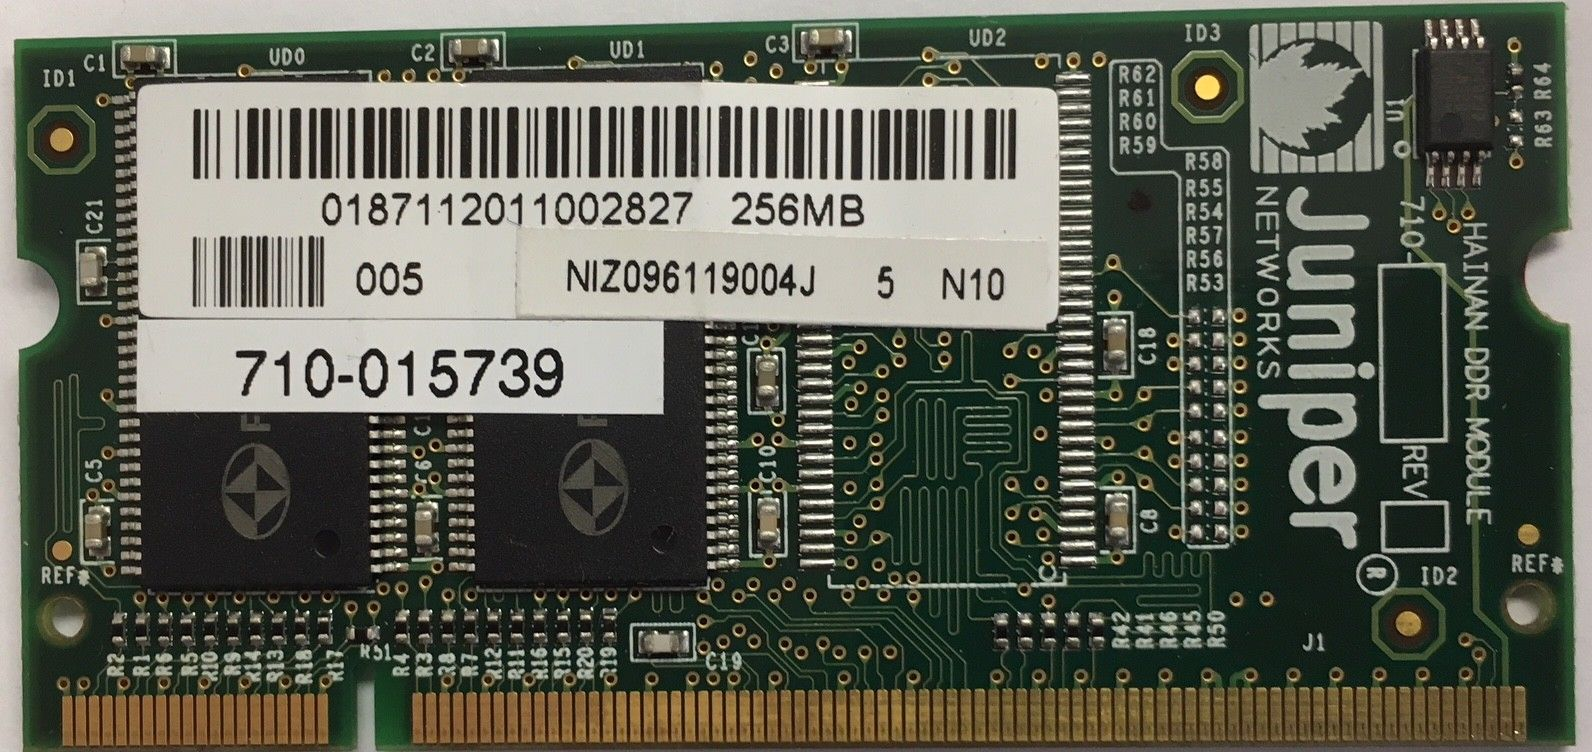 Juniper Networks 256MG DIMM Memory Upgrade For SSG5 Or SSG20